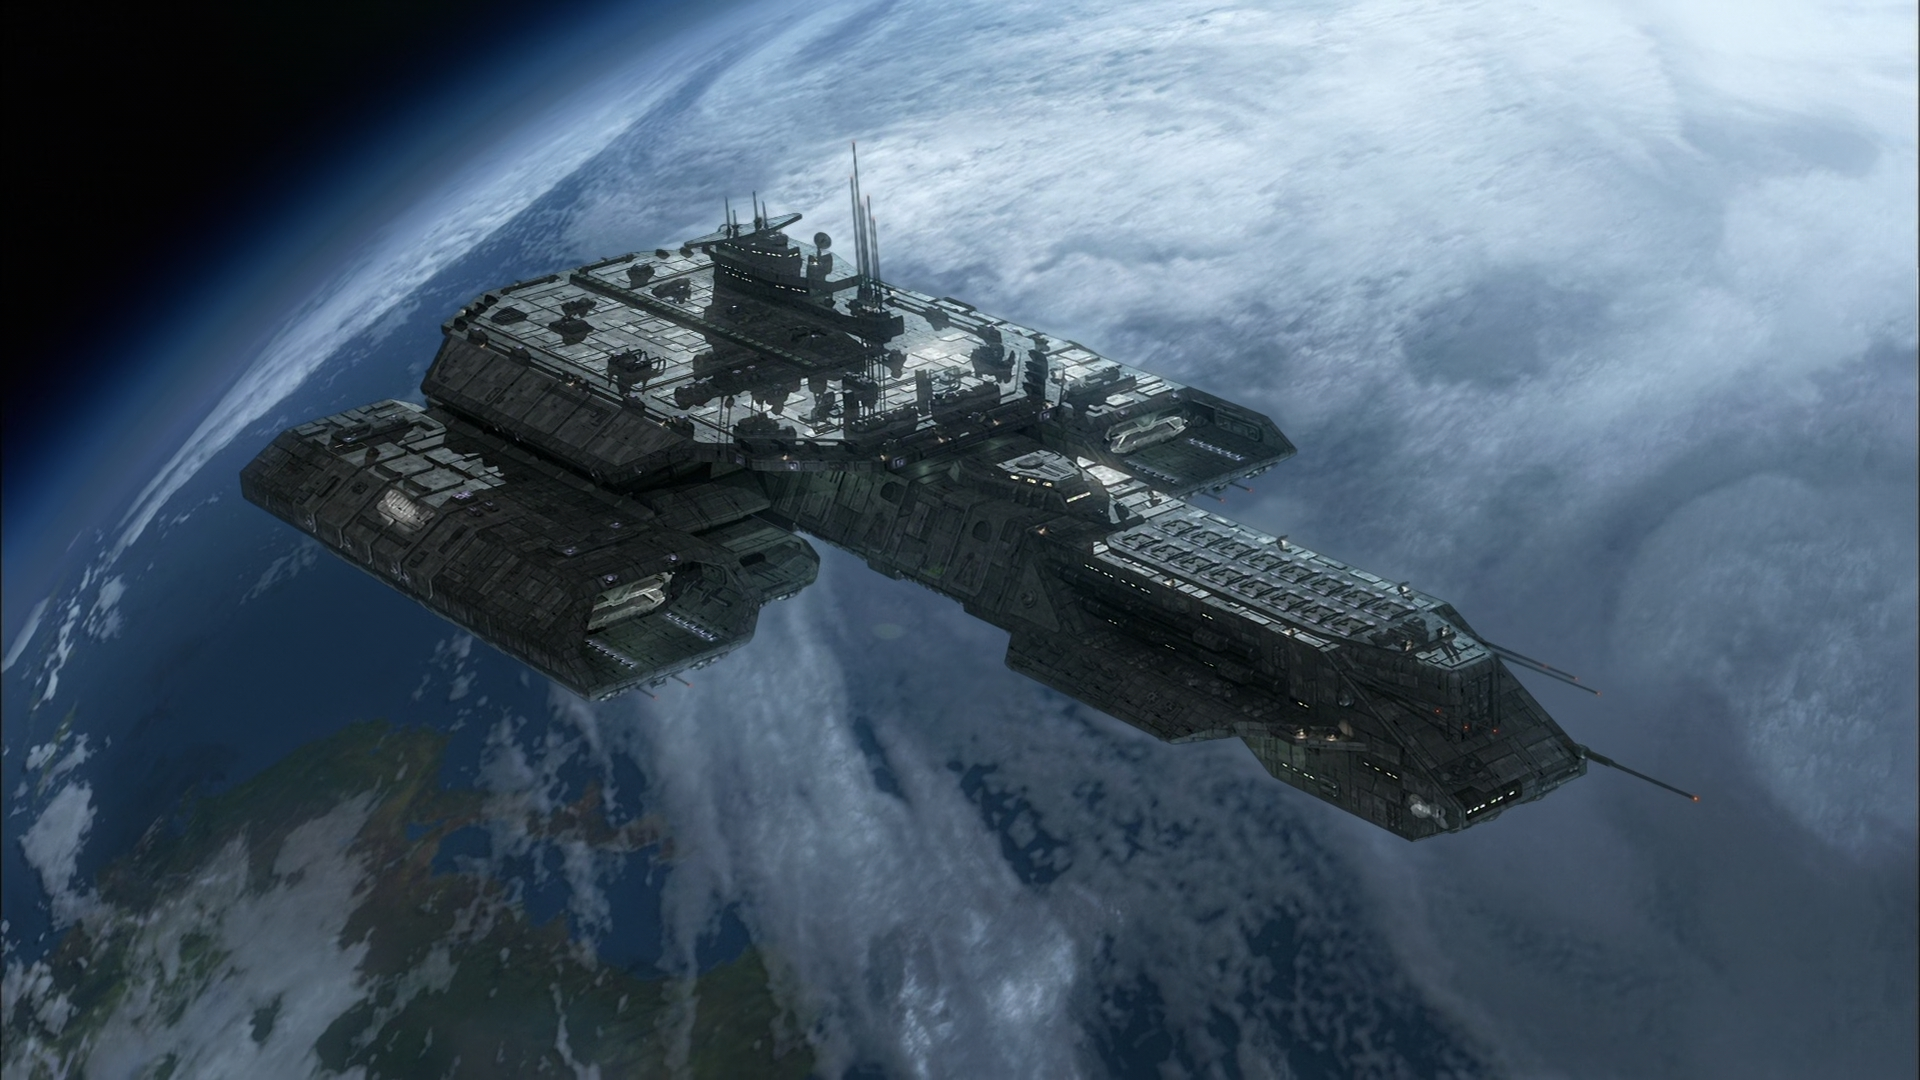 http://images3.wikia.nocookie.net/__cb20080423081824/stargate/images/0/03/Daedalus.jpg